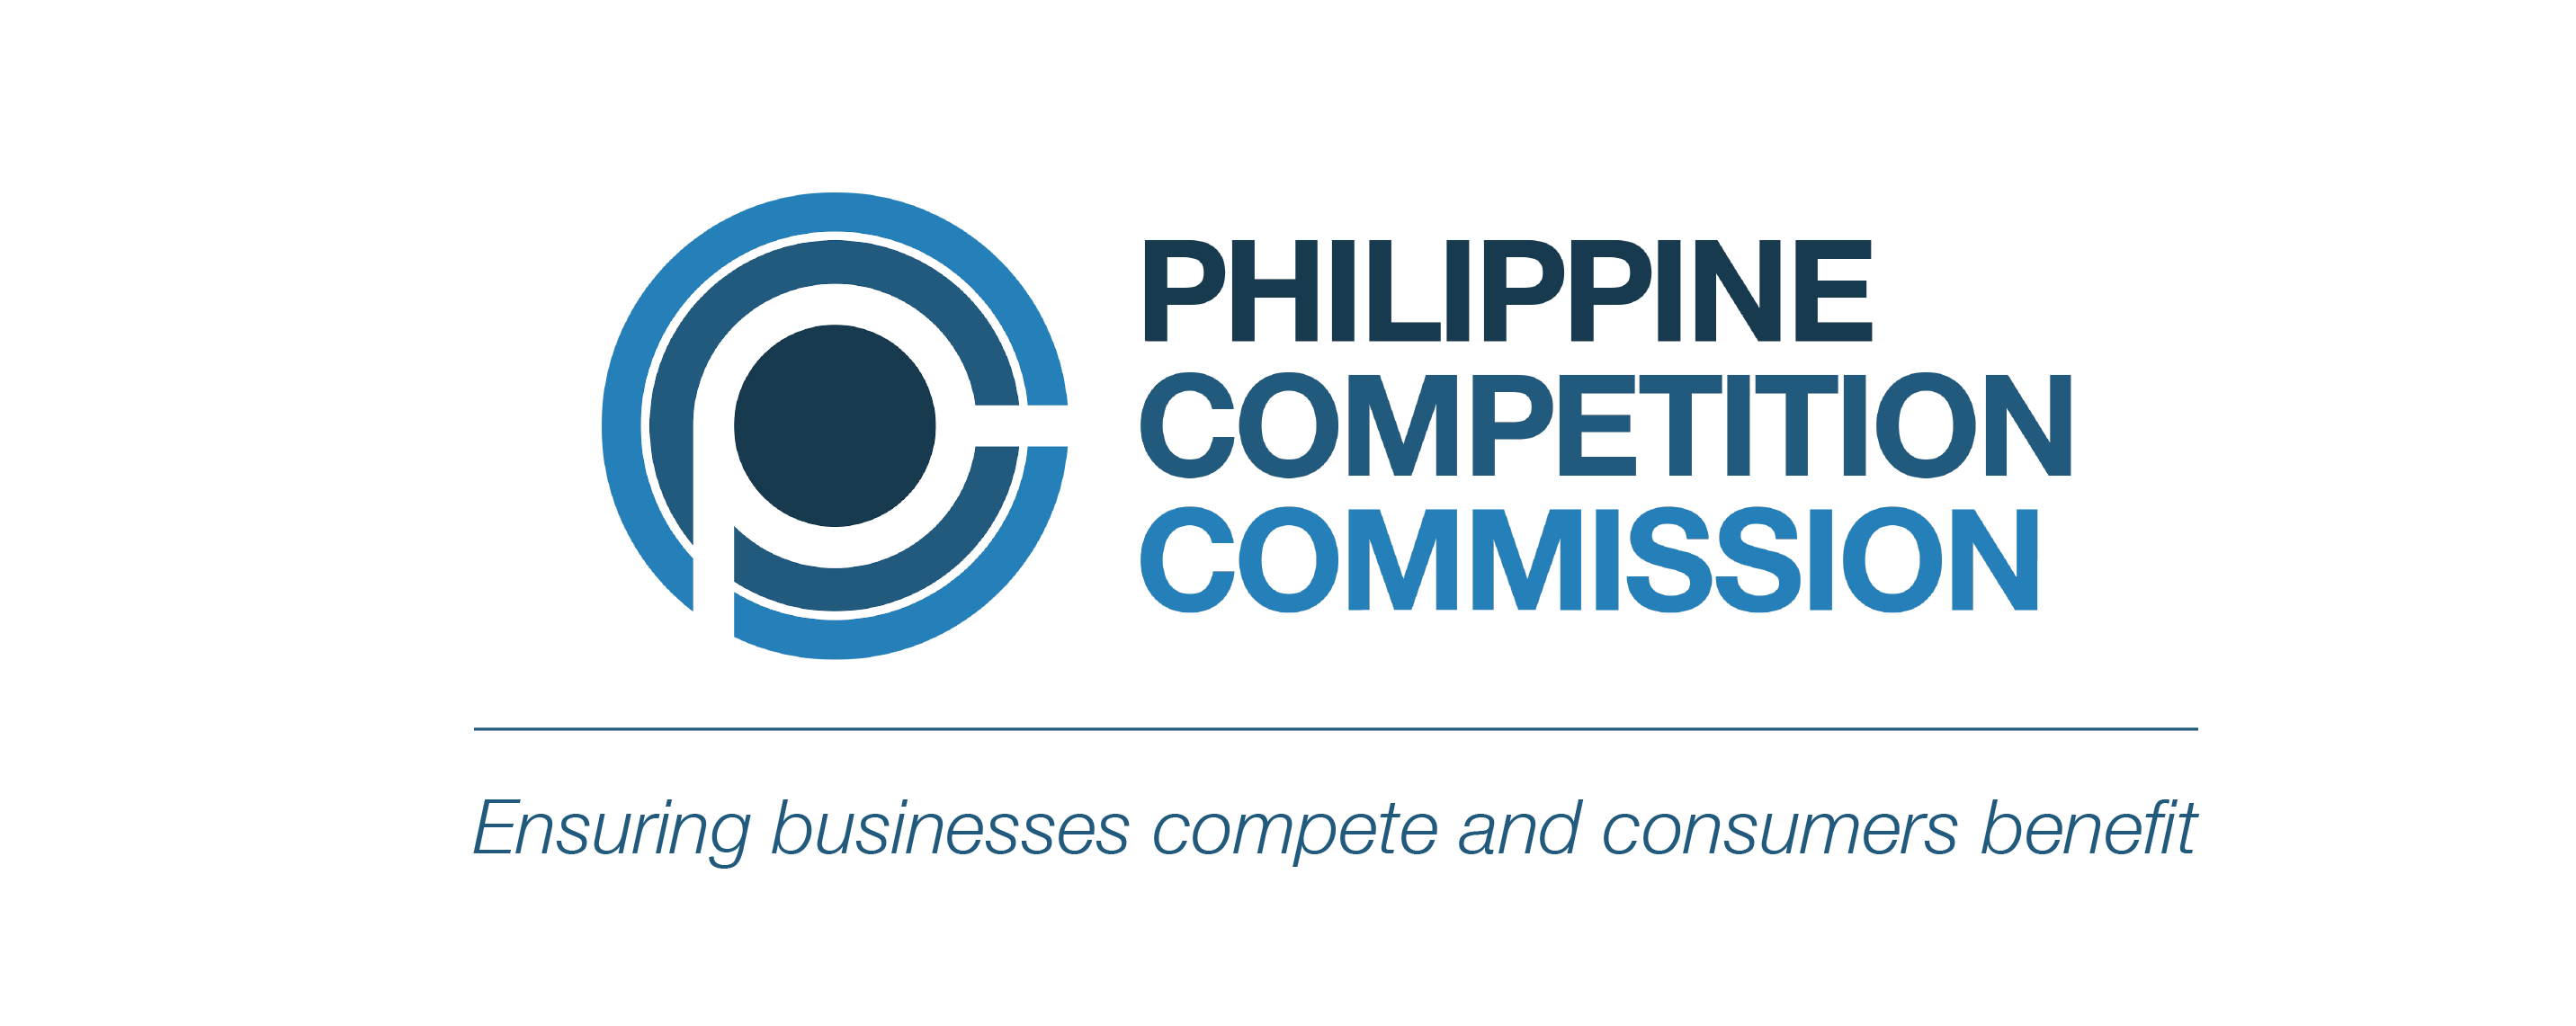 Asean competition philippine competition act 2015 thecheapjerseys Images